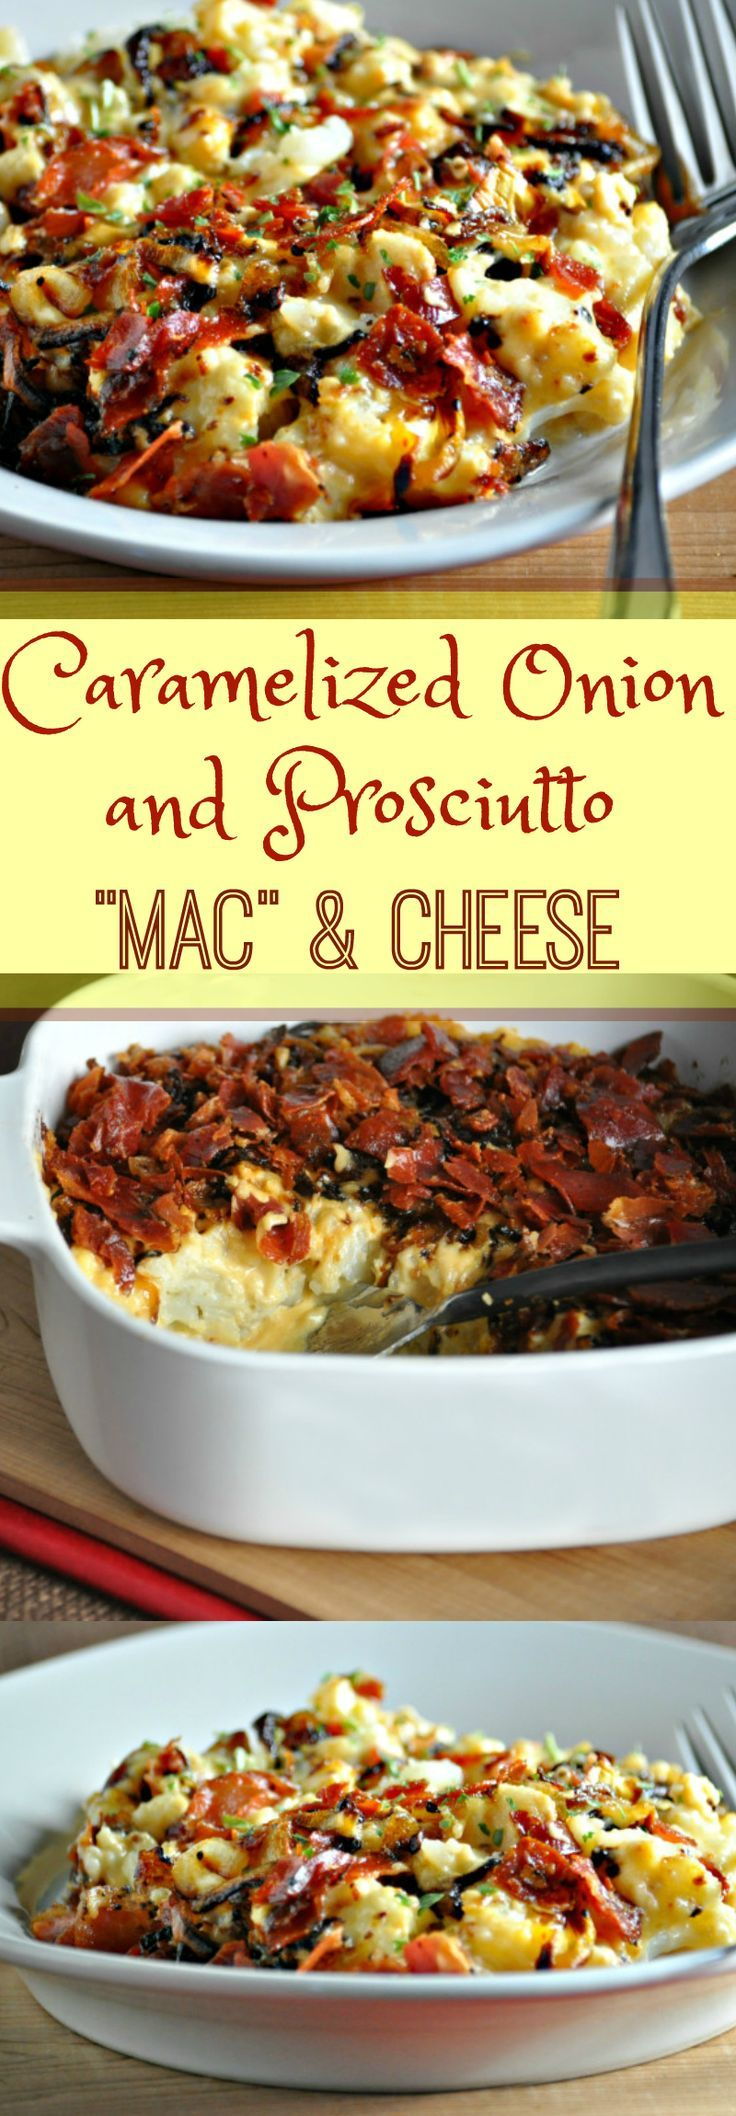 Caramelized Onion and Prosciutto Mac and Cheese - Low Carb, Gluten Free | Peace Love and Low Carb